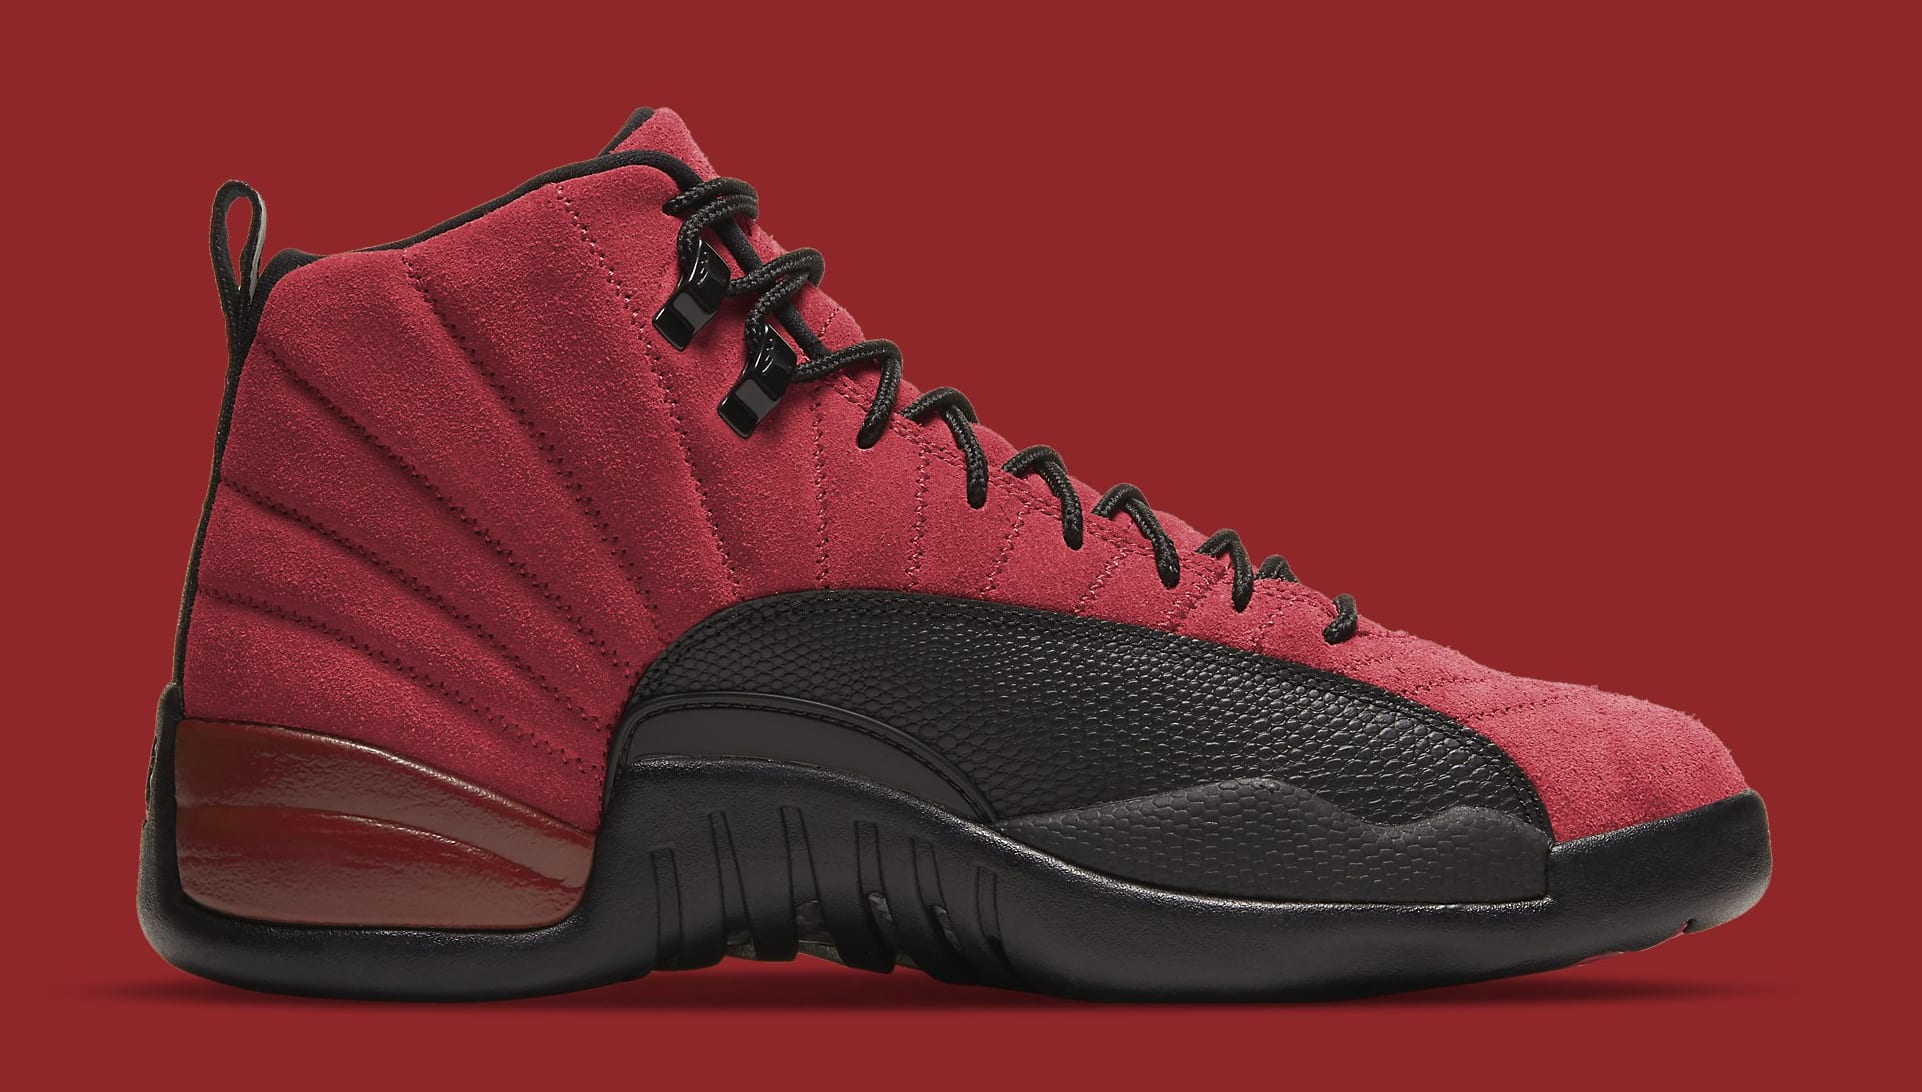 Air Jordan 12 Retro 'Reverse Flu Game' CT8013-602 Medial